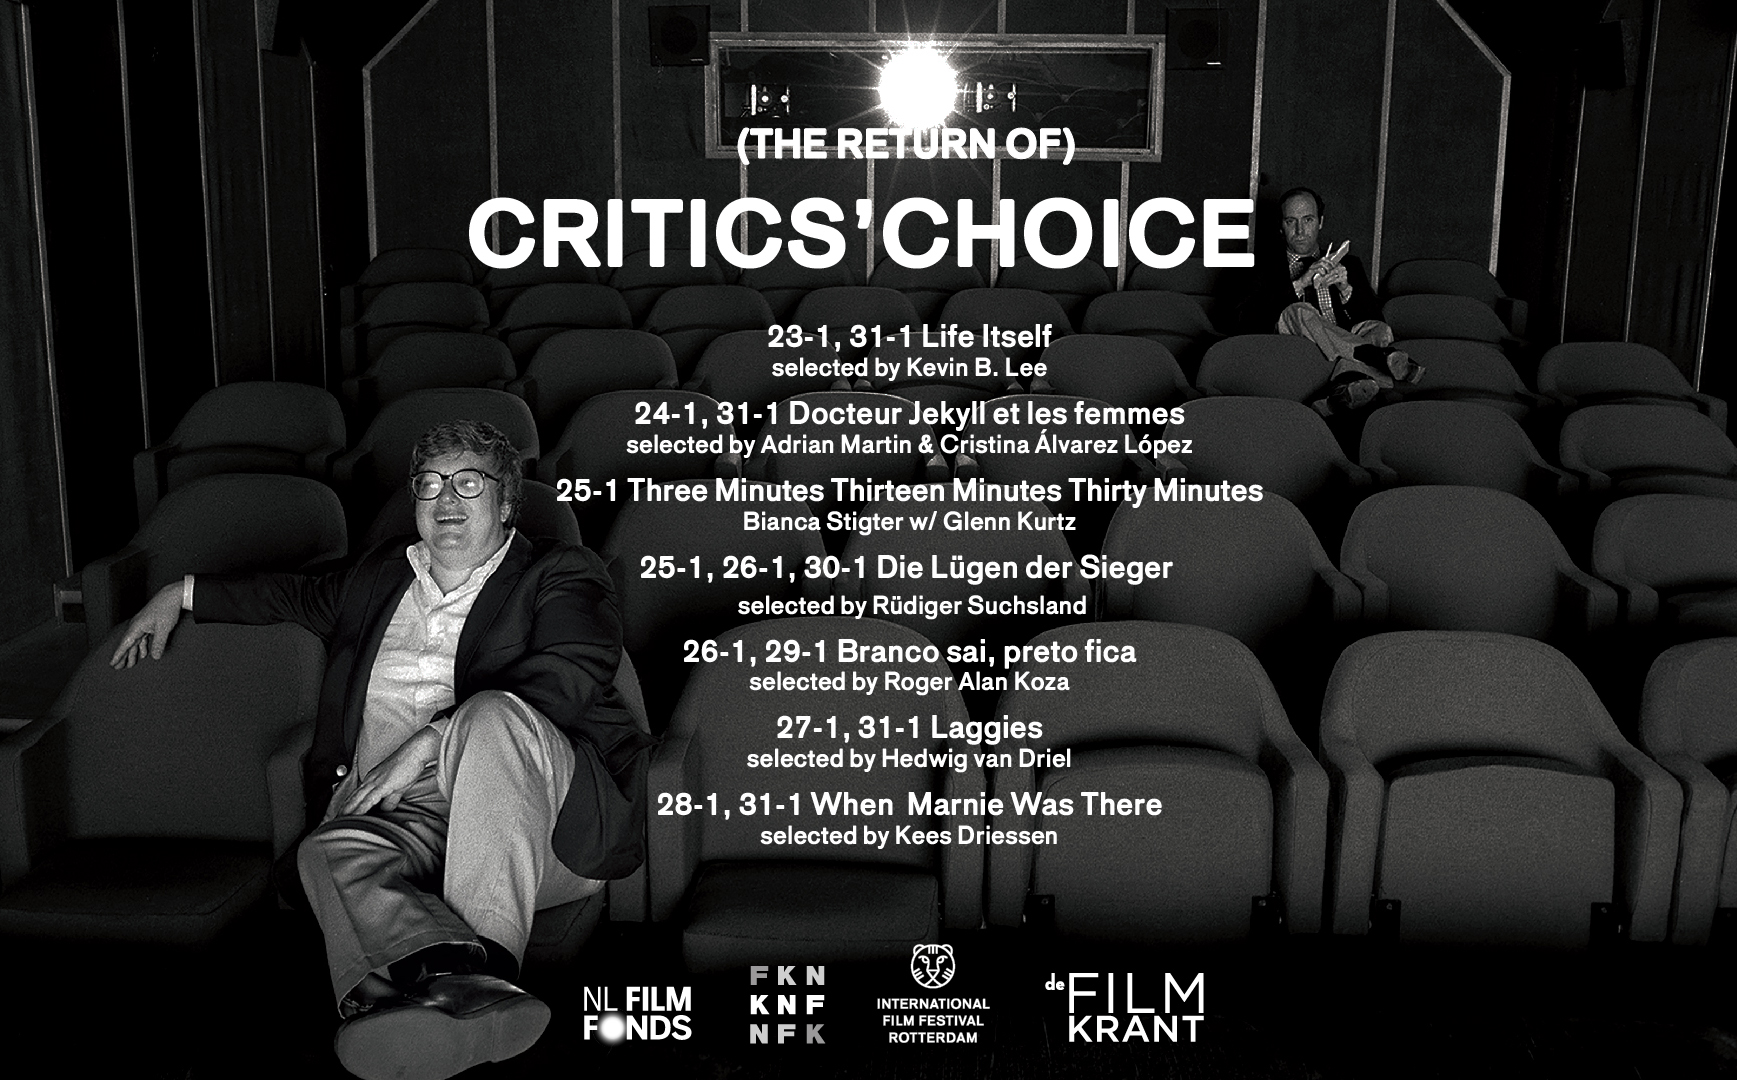 (The Return of the) Critics' Choice